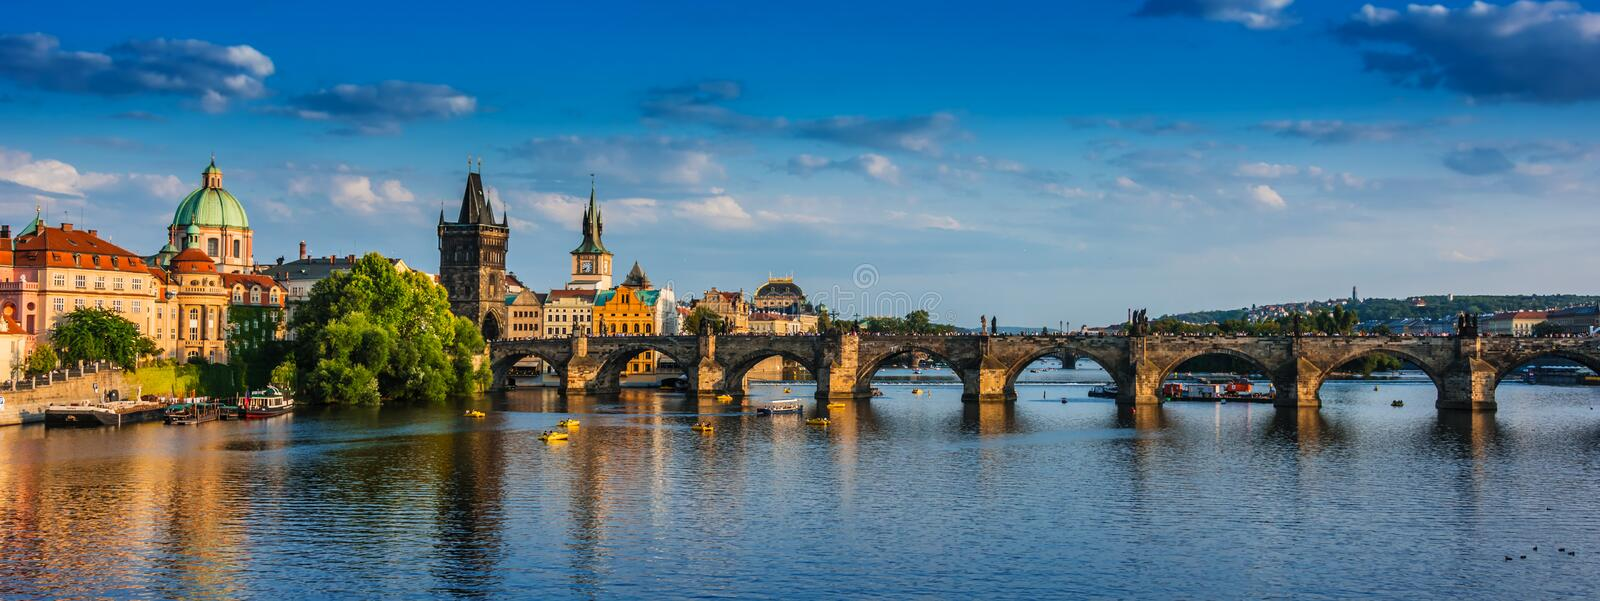 View of dowtown Prague with Charles Bridge over Vltava royalty free stock images